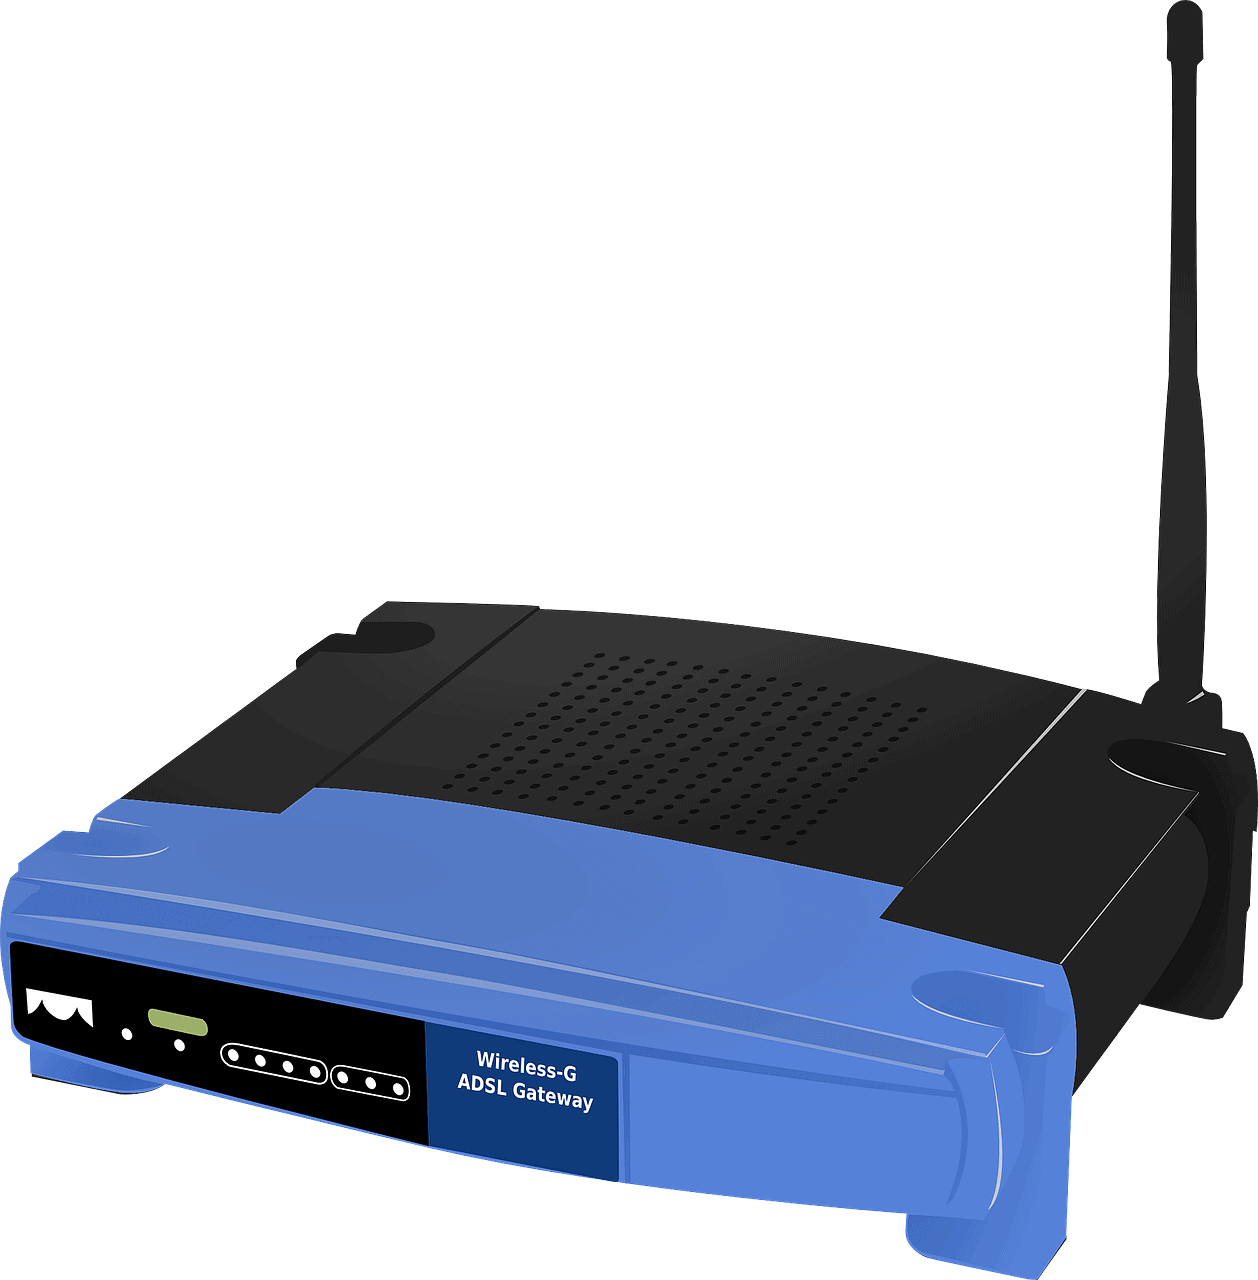 DD-WRT Router